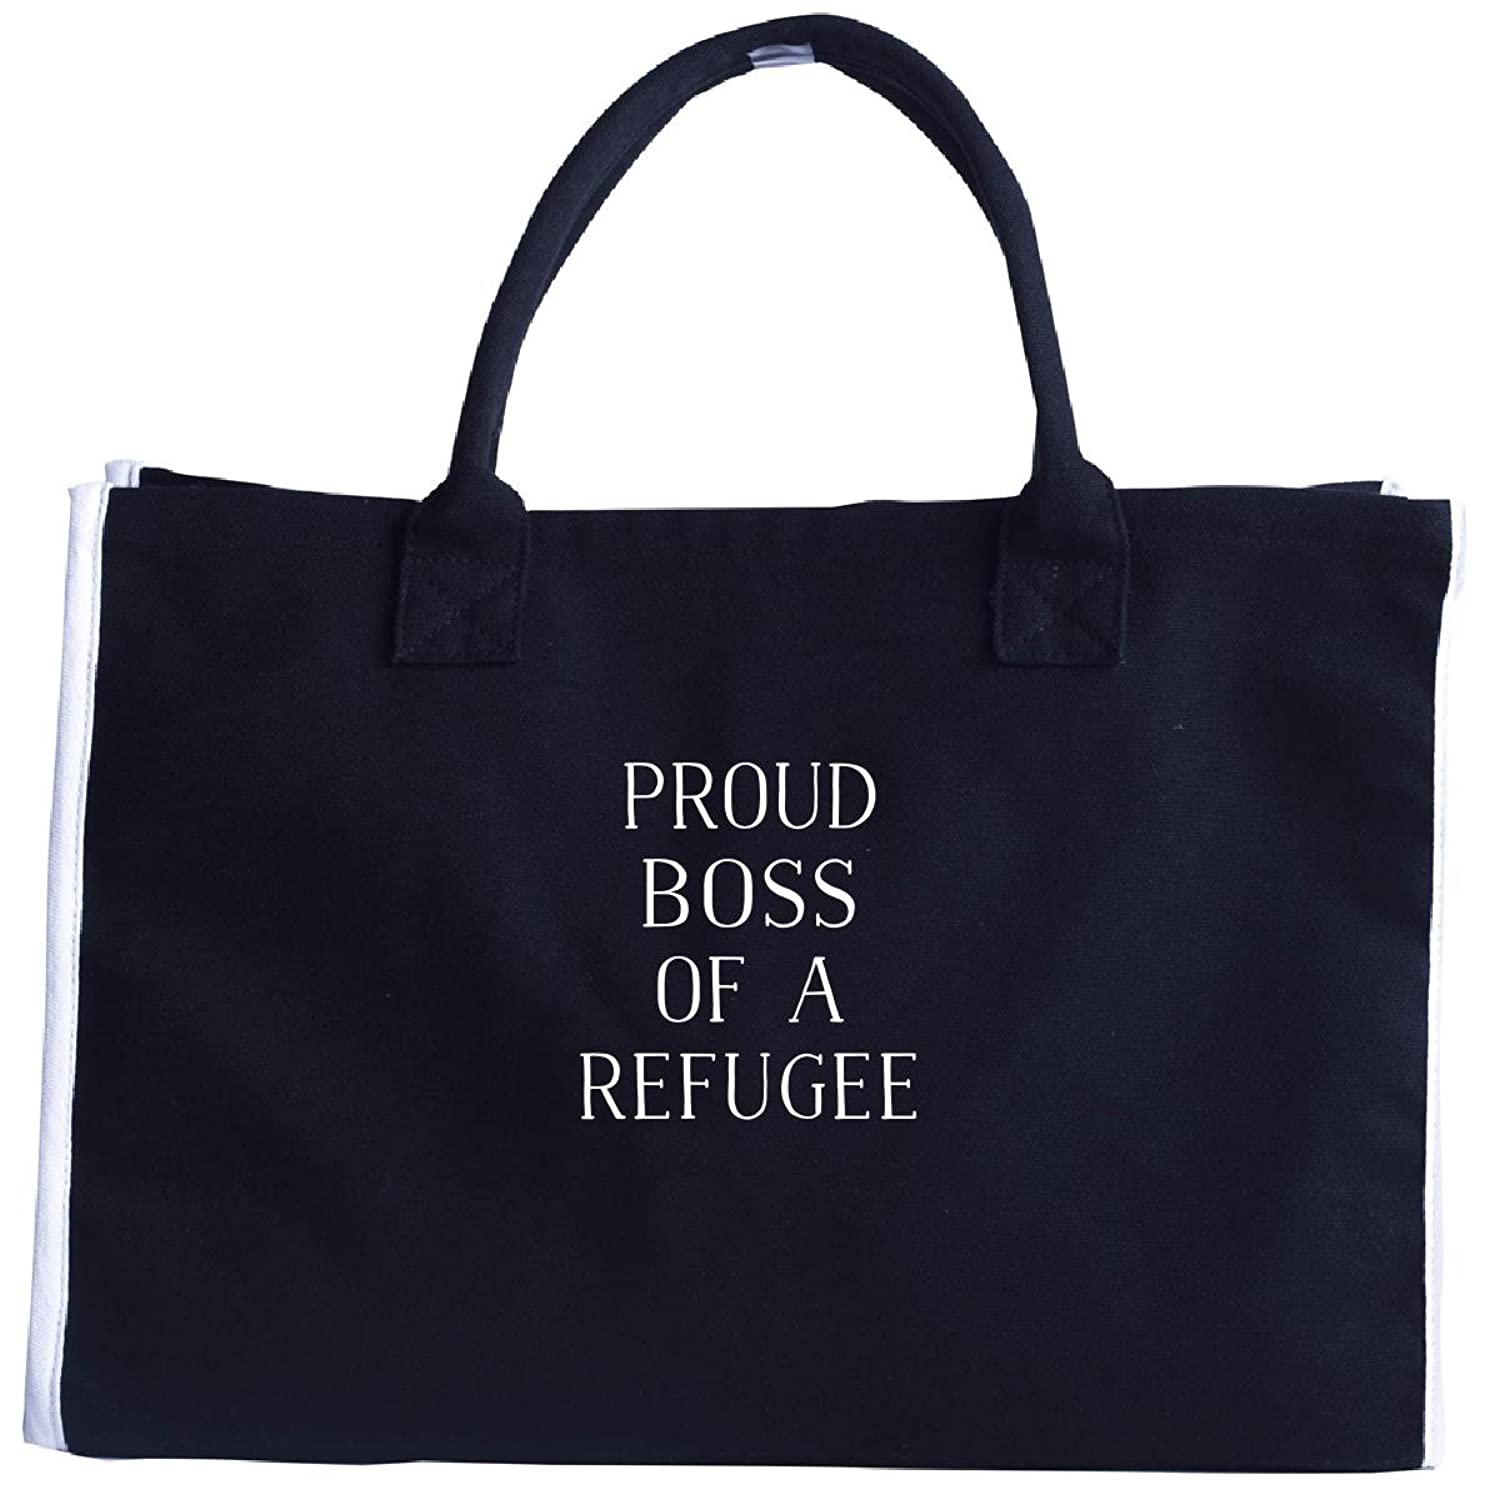 Proud Boss Of A Refugee Support Immigration - Tote Bag